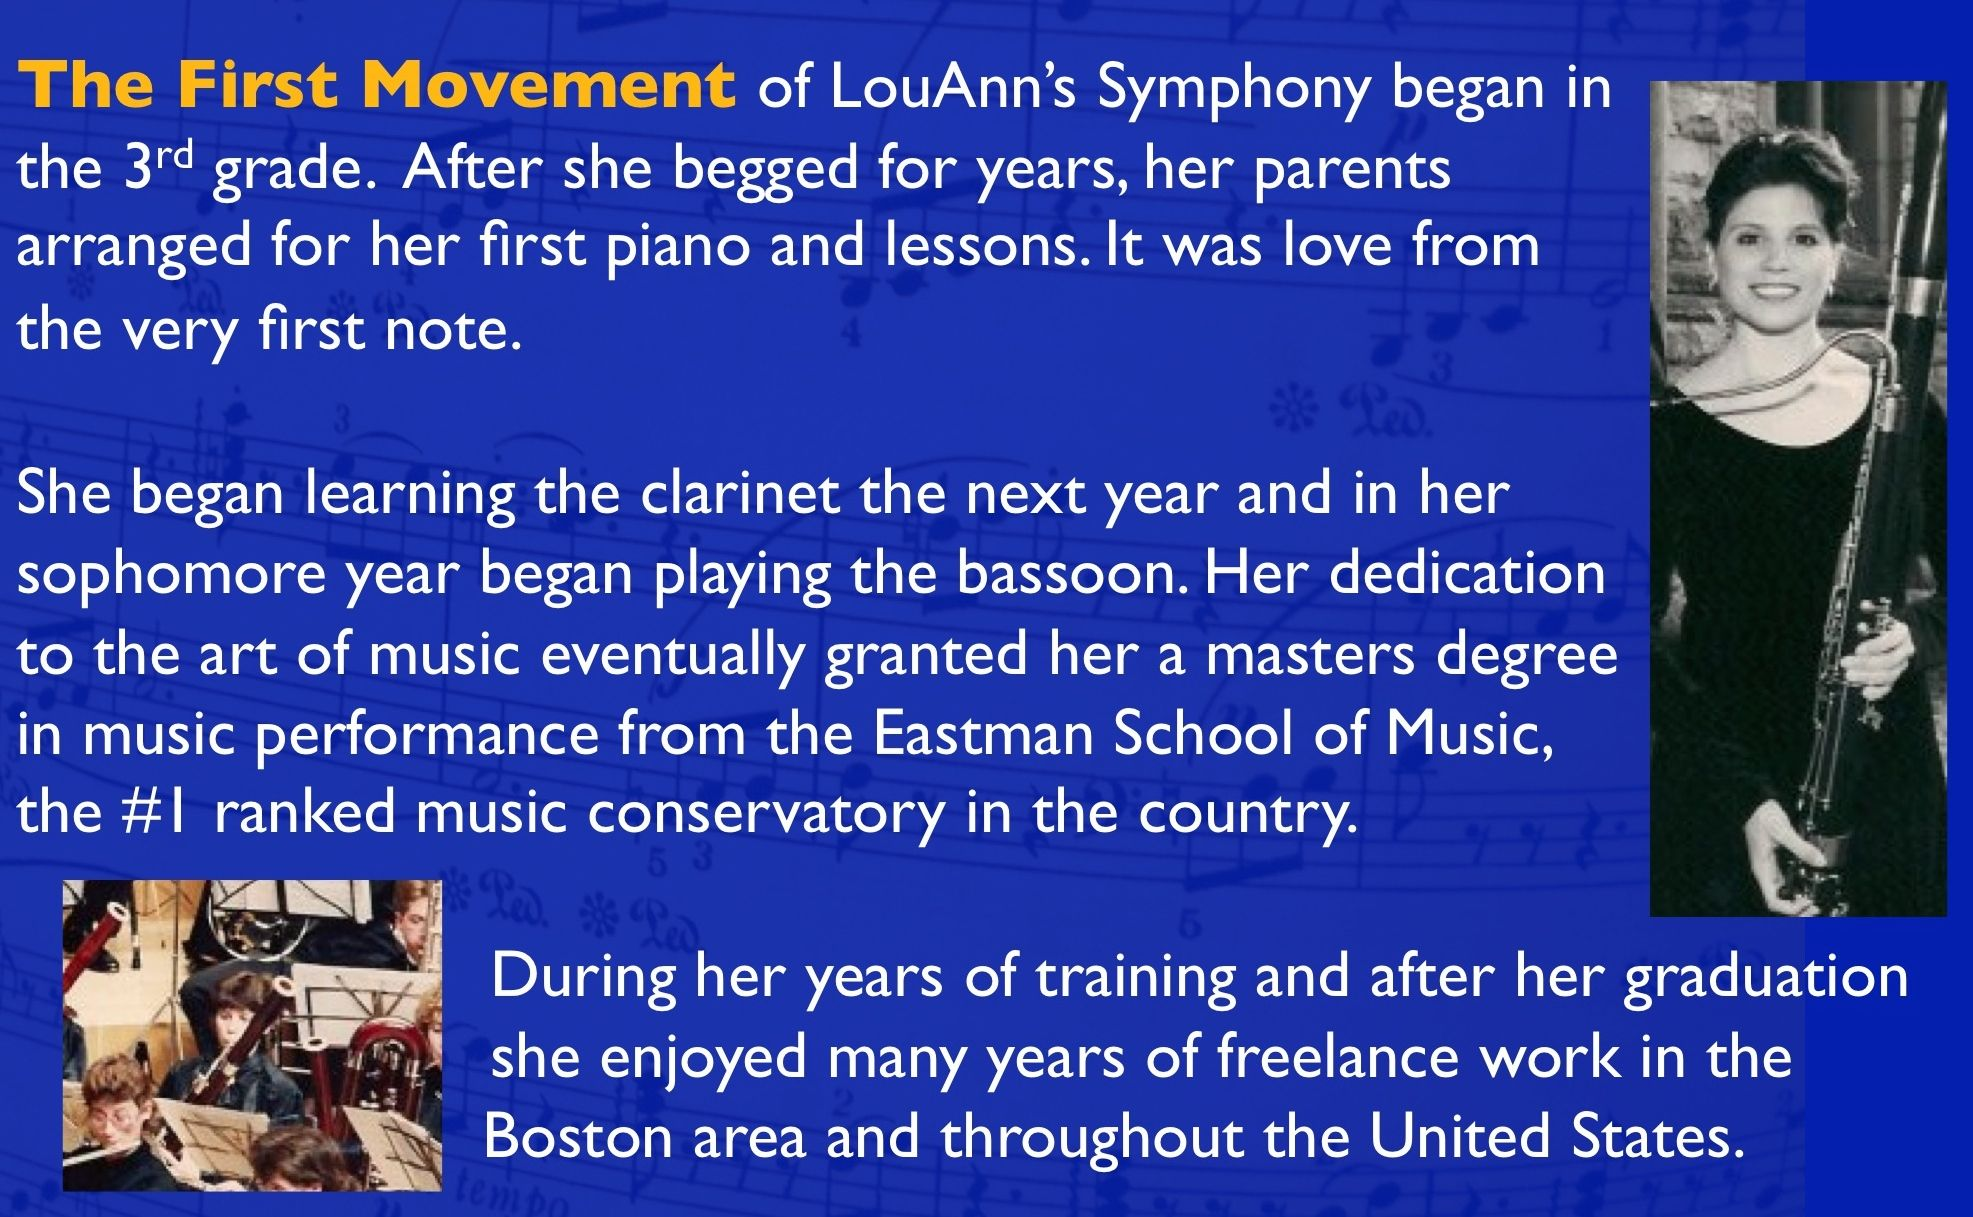 LouAnn_first_movement